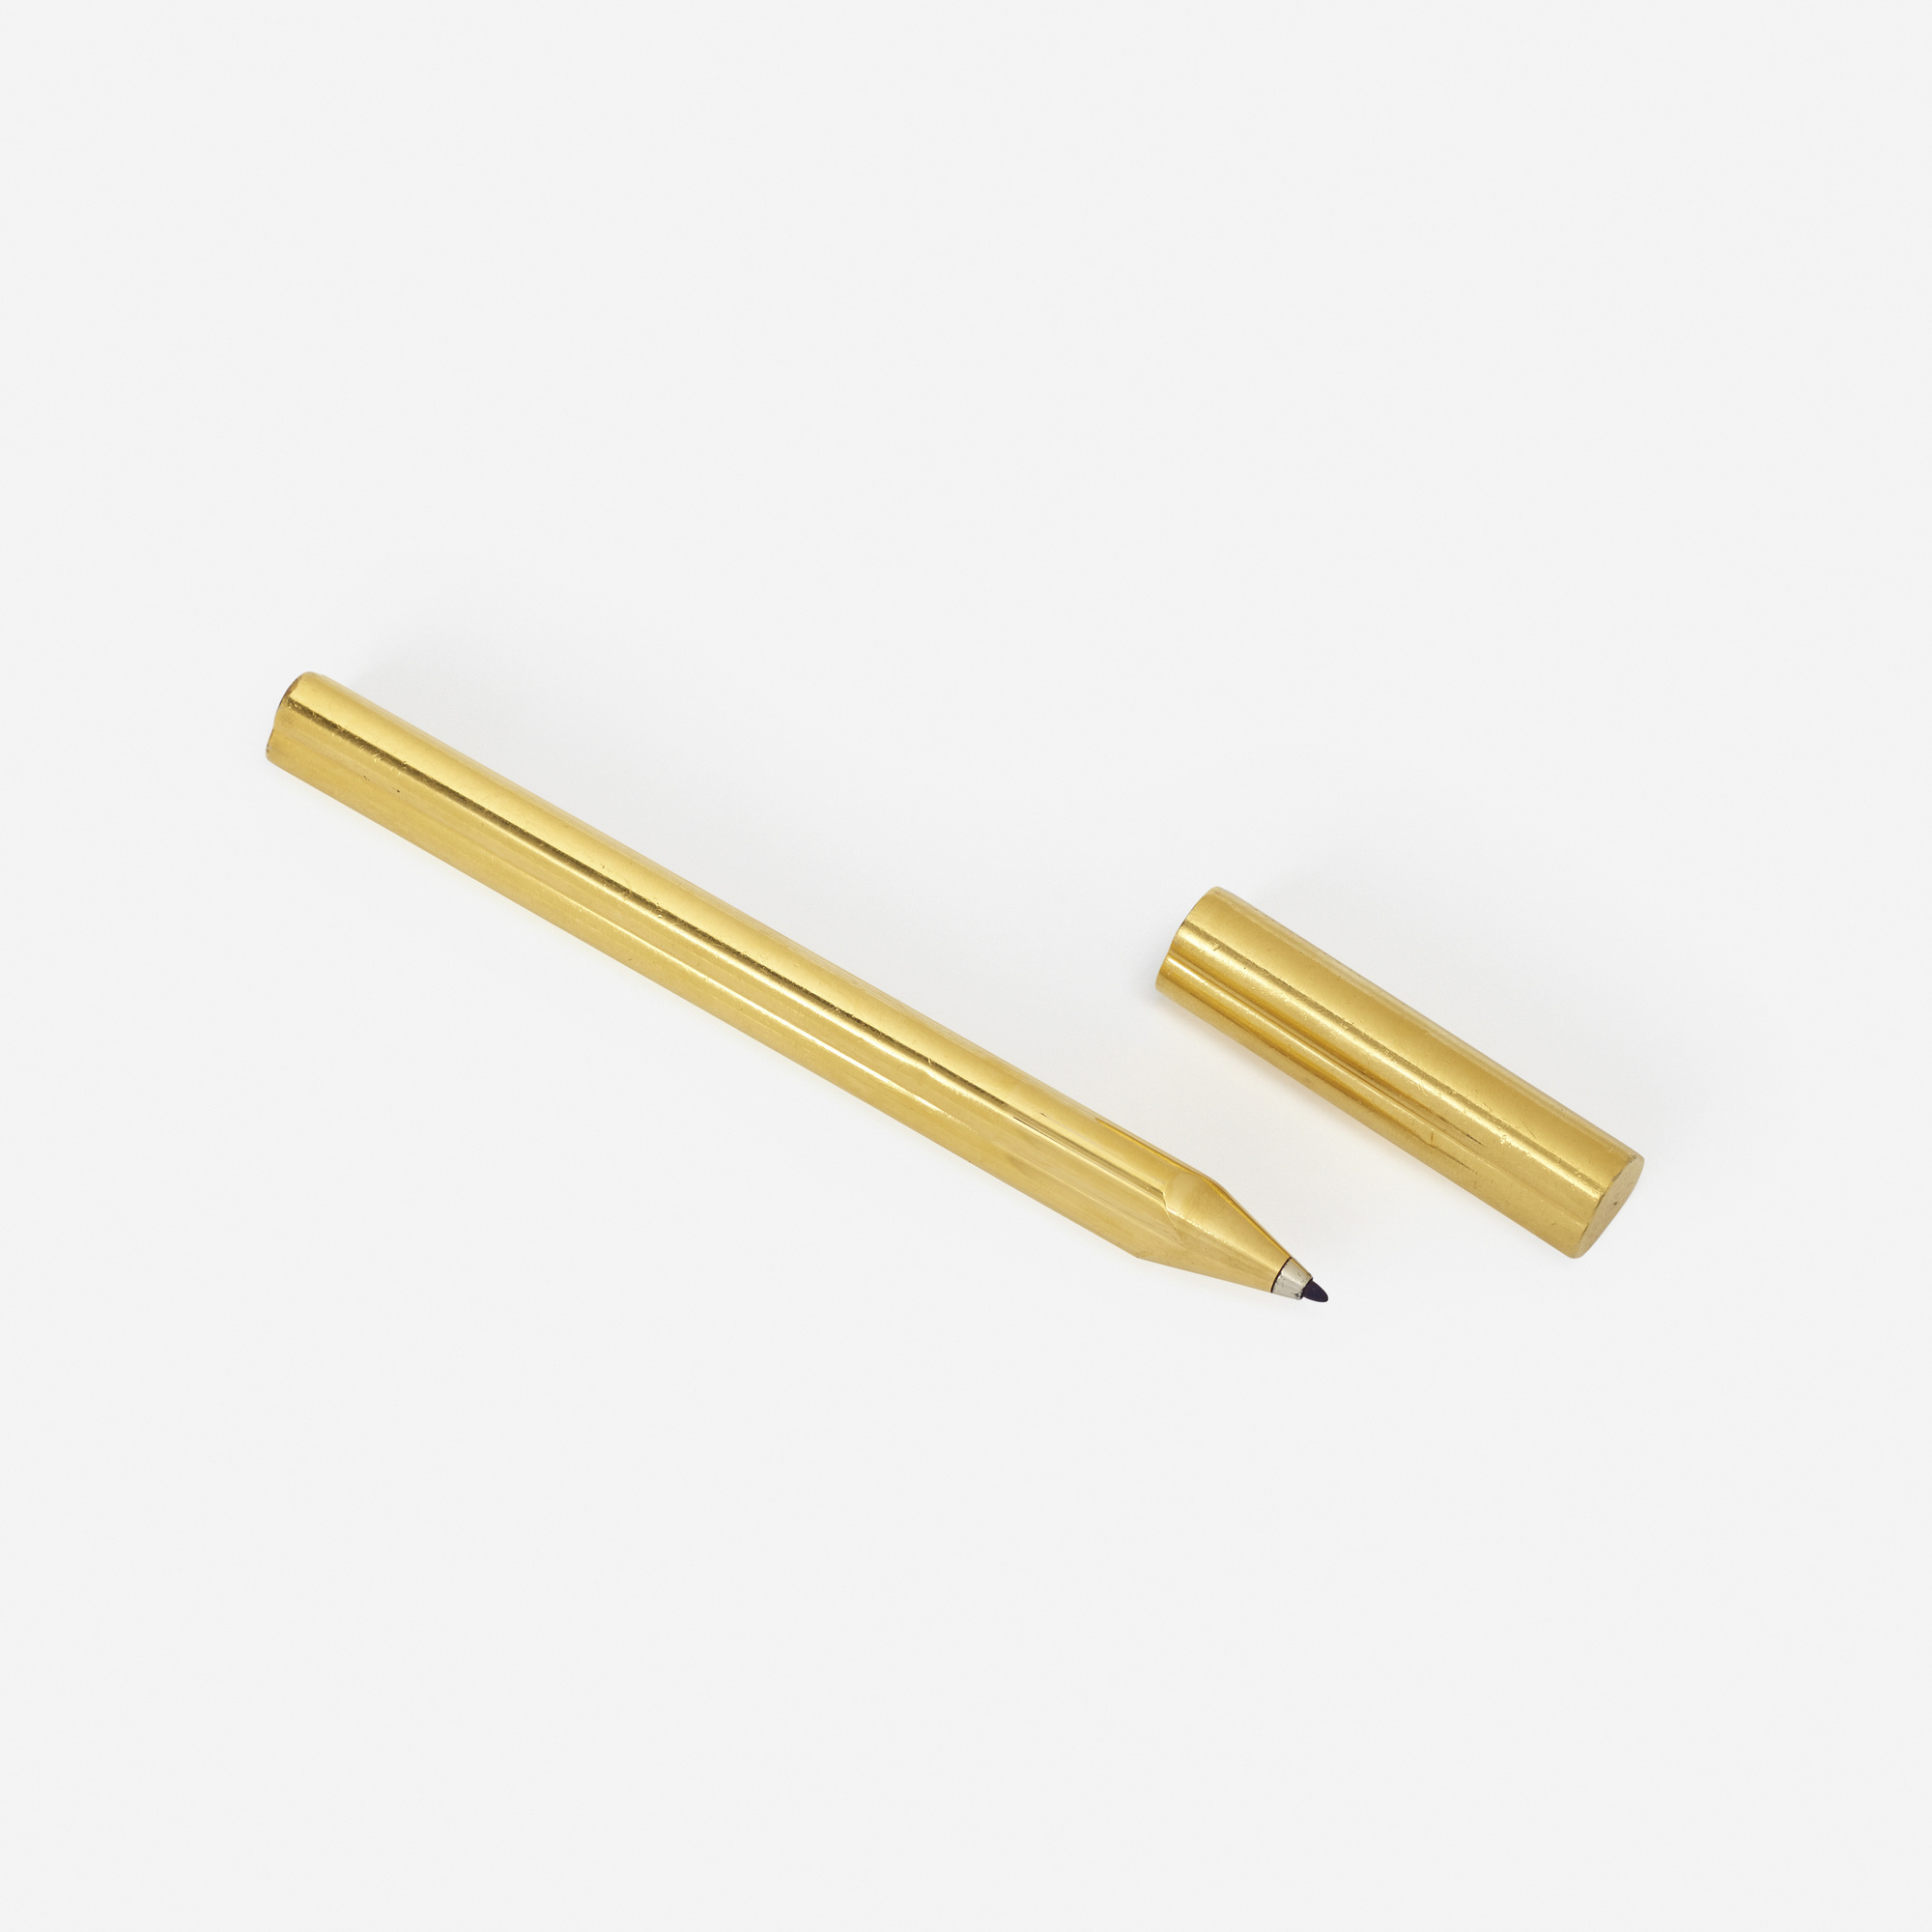 204: Bulgari / A gold-plated pen (1 of 2)